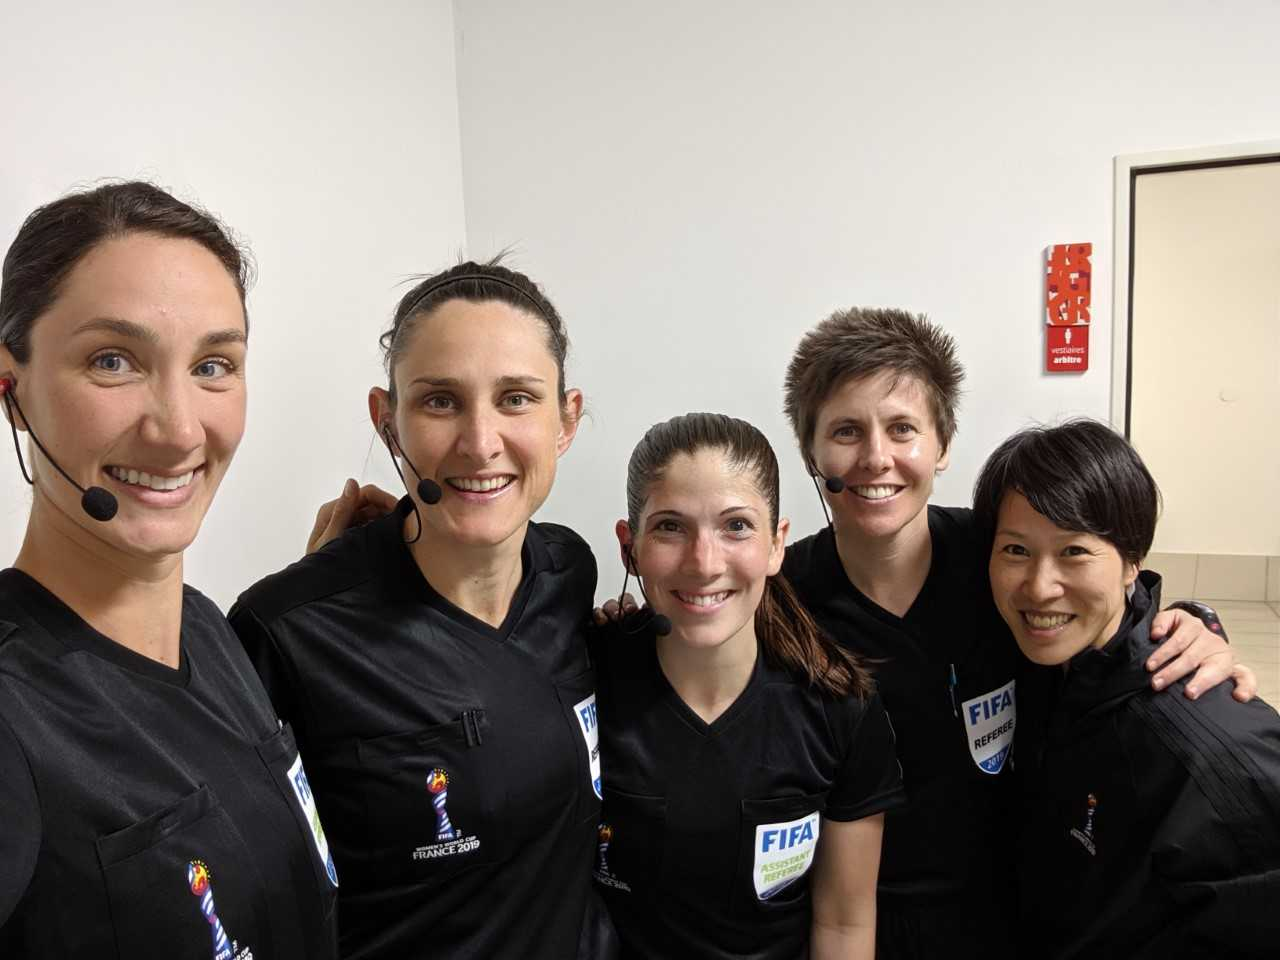 Katy Nesbitt representing PRO and the USA at the Women's World Cup. (AR Chantal Boudreau from Canada is in the middle.)